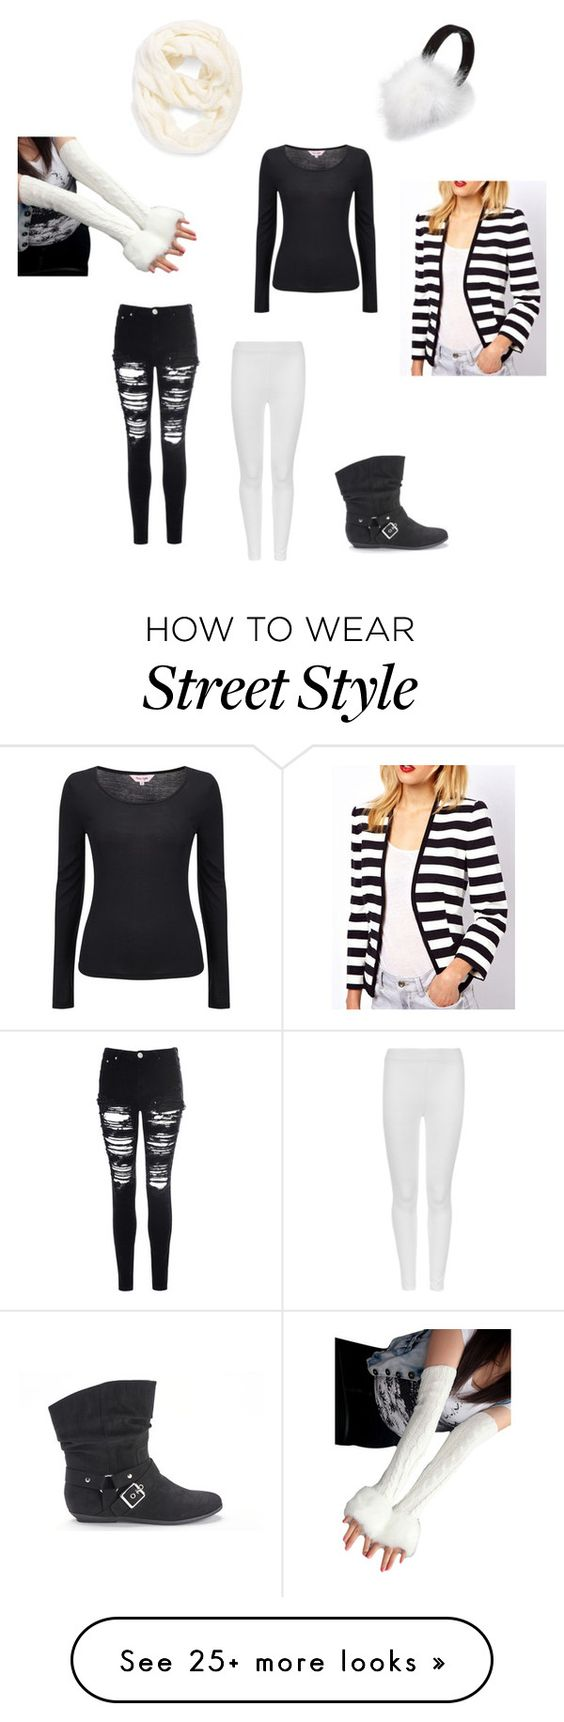 """Fall Wardrobe #3"" by music208 on Polyvore featuring Phase Eight, Jocelyn, Echo, M&S Collection, Glamorous and fallwinter2015"